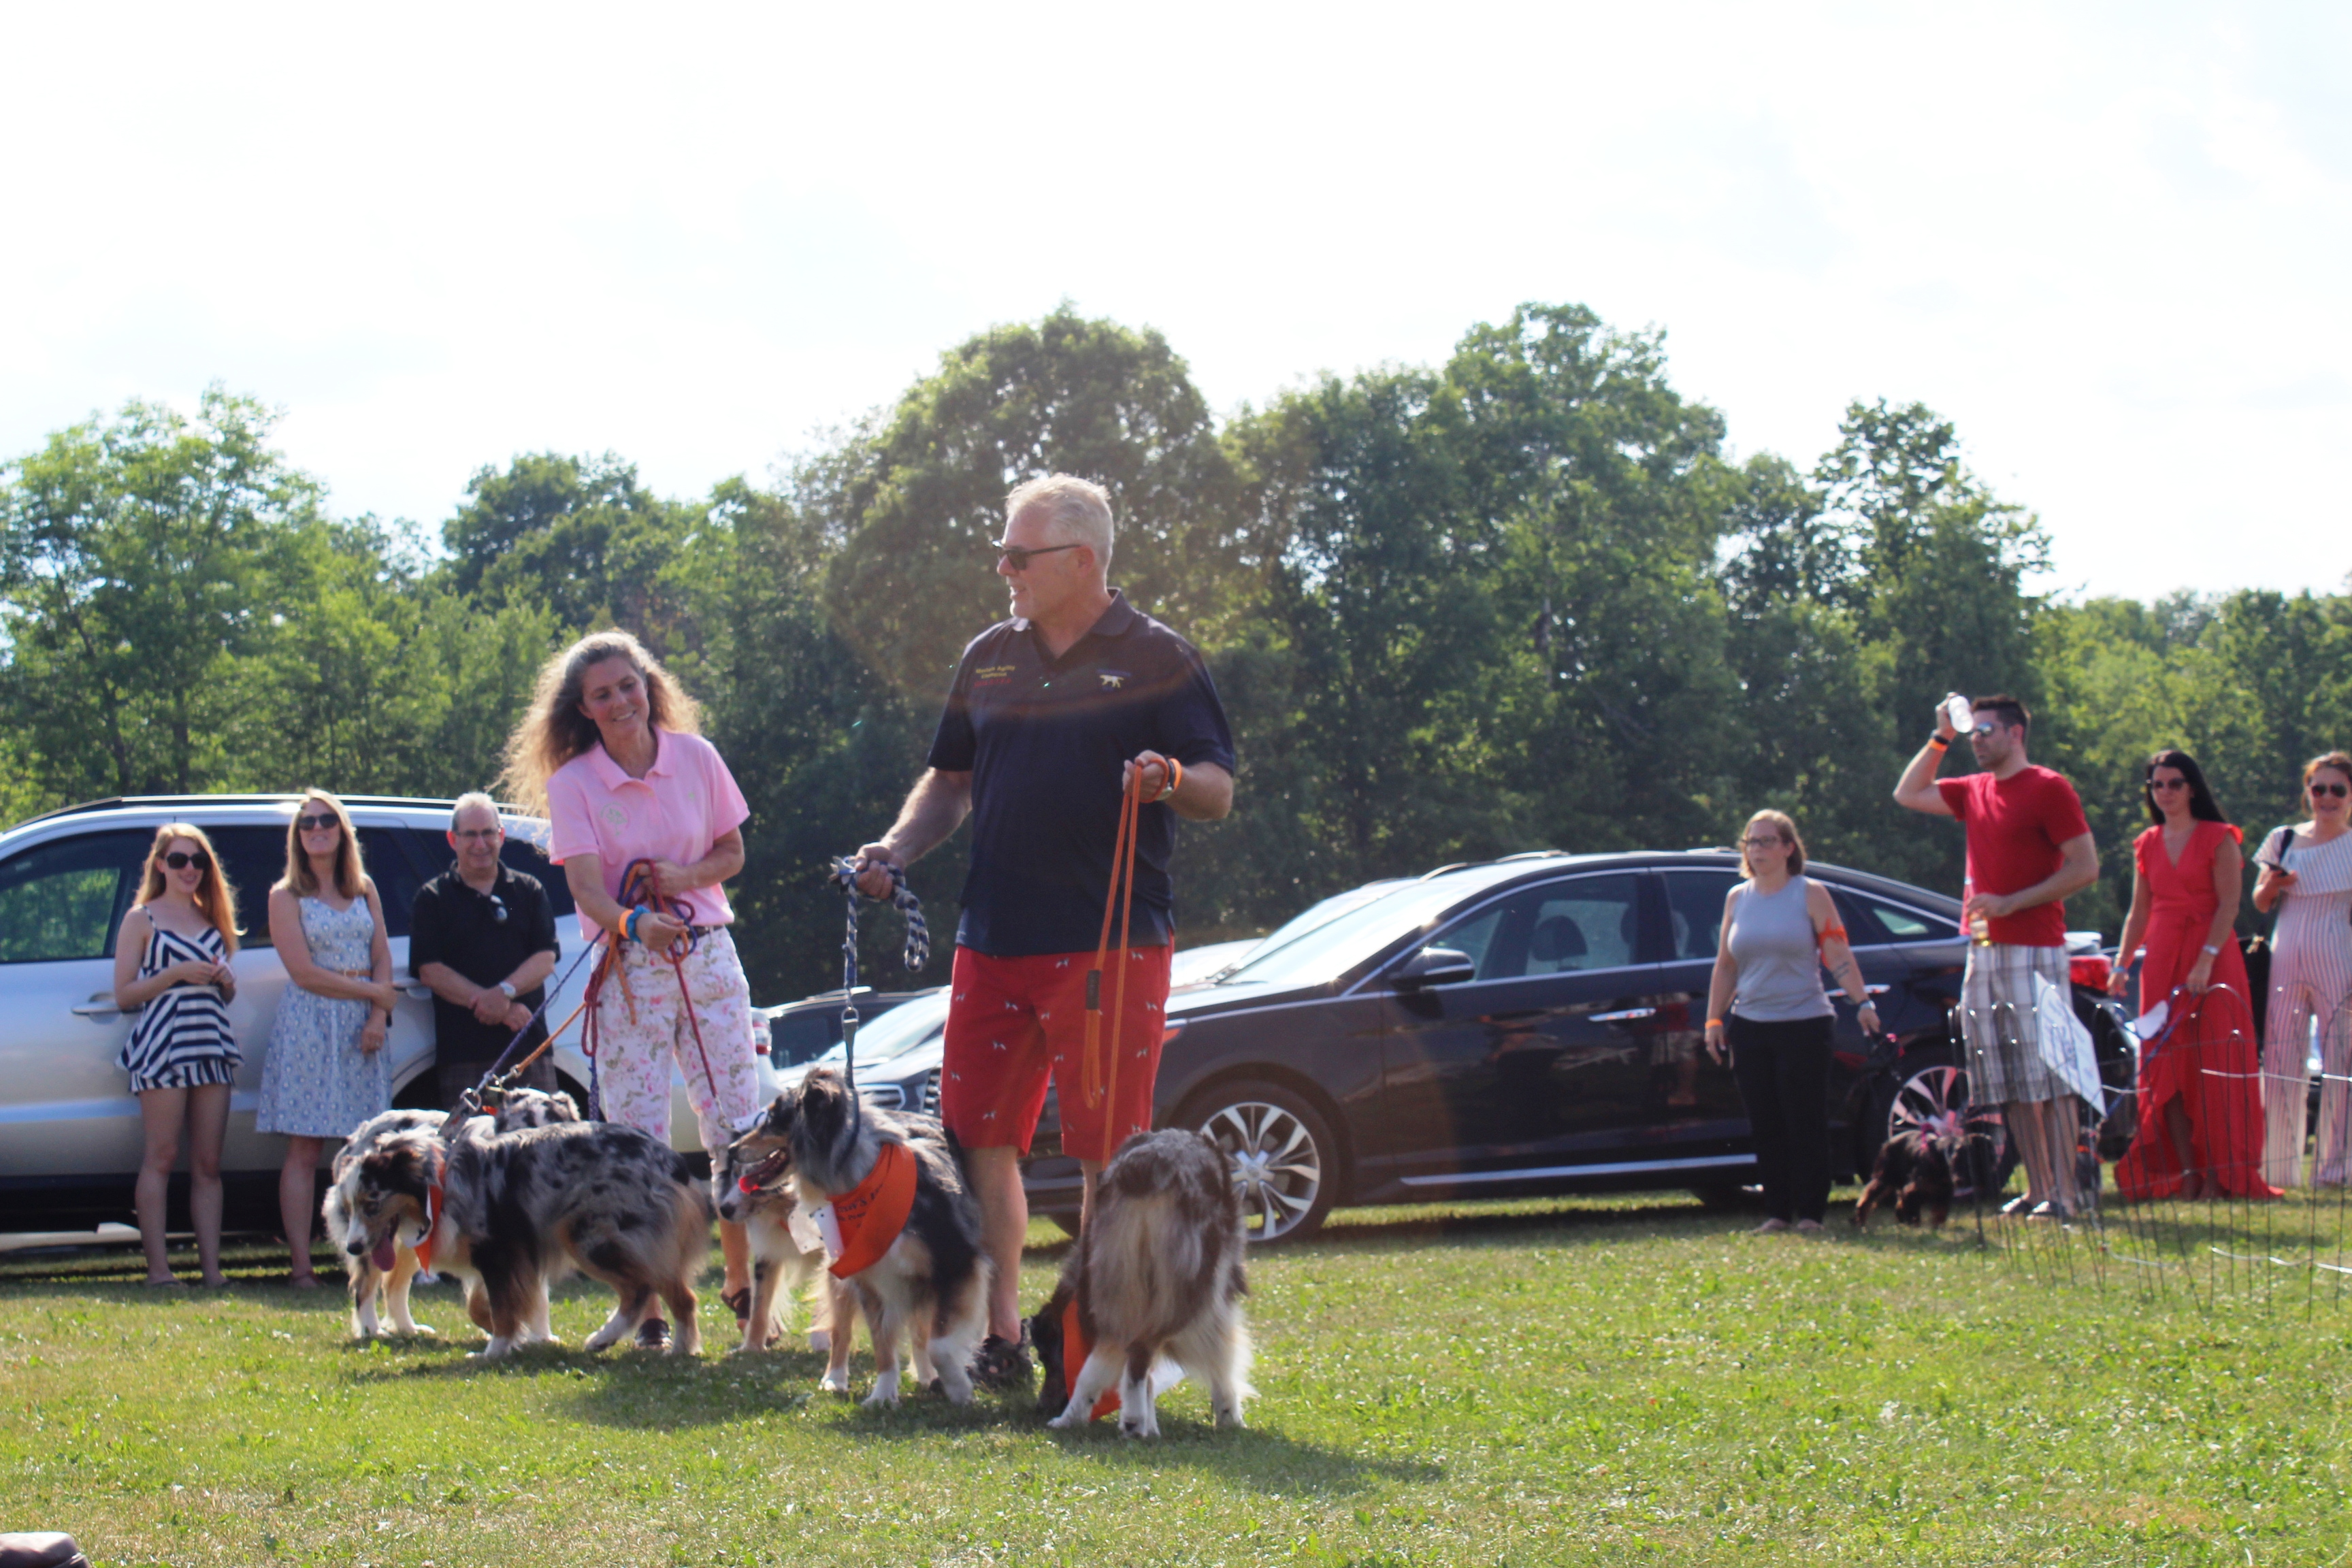 Couple walking large group of dogs at the Saratoga Dog & Pony Show to benefit AIM Services, Inc.